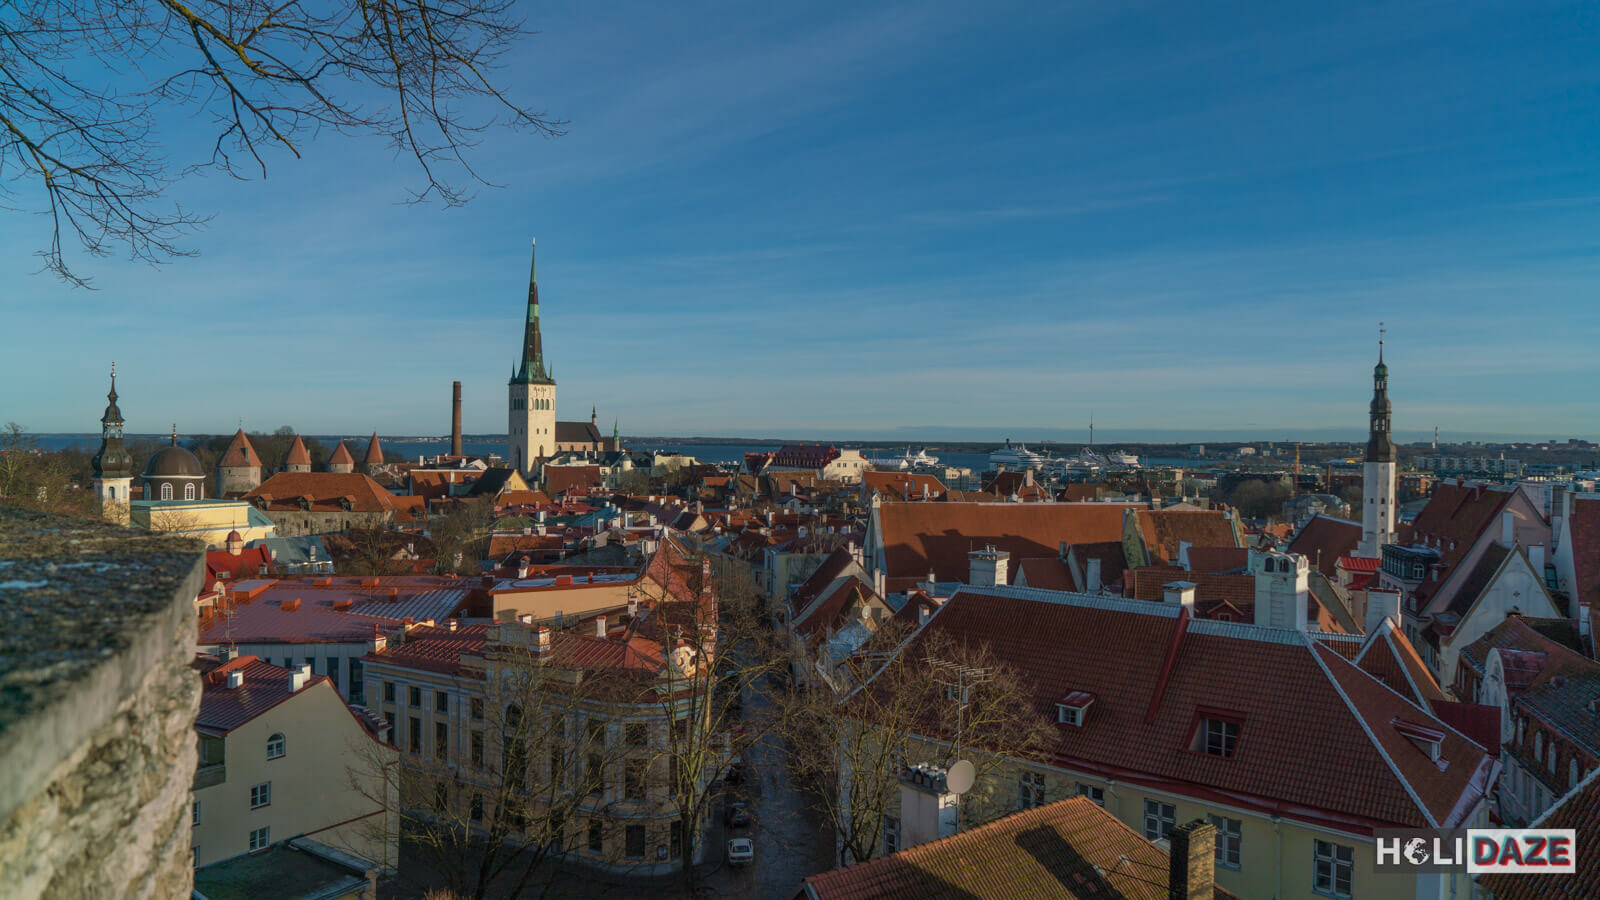 The Tallinn Old Town skyline is breathtaking -- and a UNESCO World Heritage Site